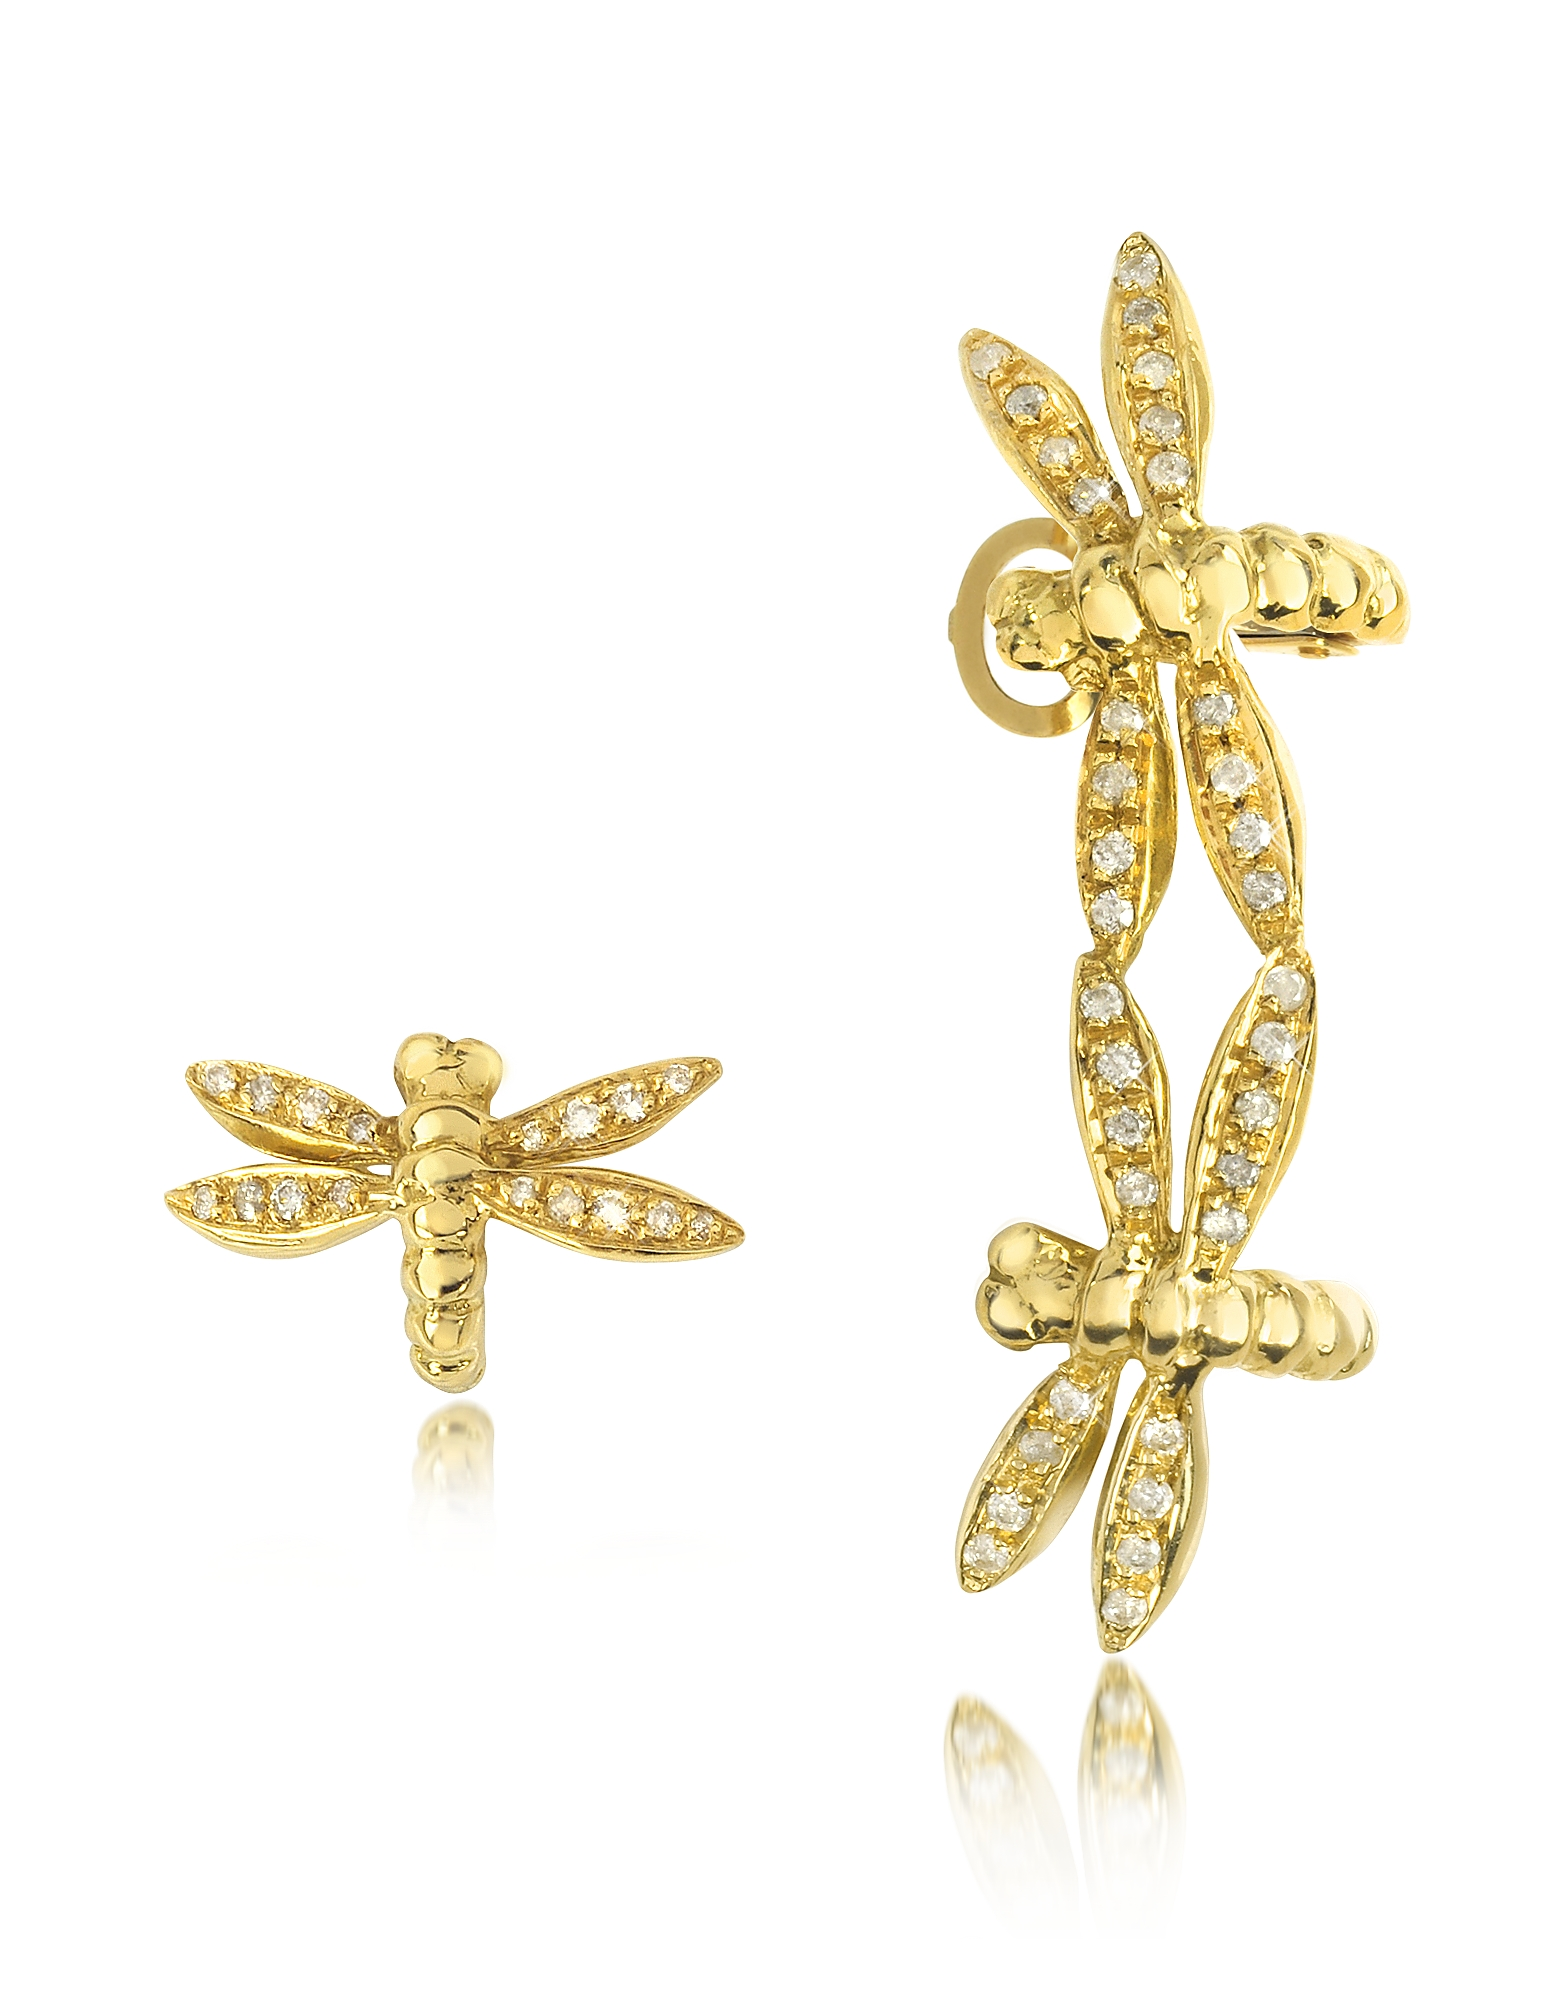 Bernard Delettrez Earrings, Dragonflies 18K Gold Earrings w/Diamonds